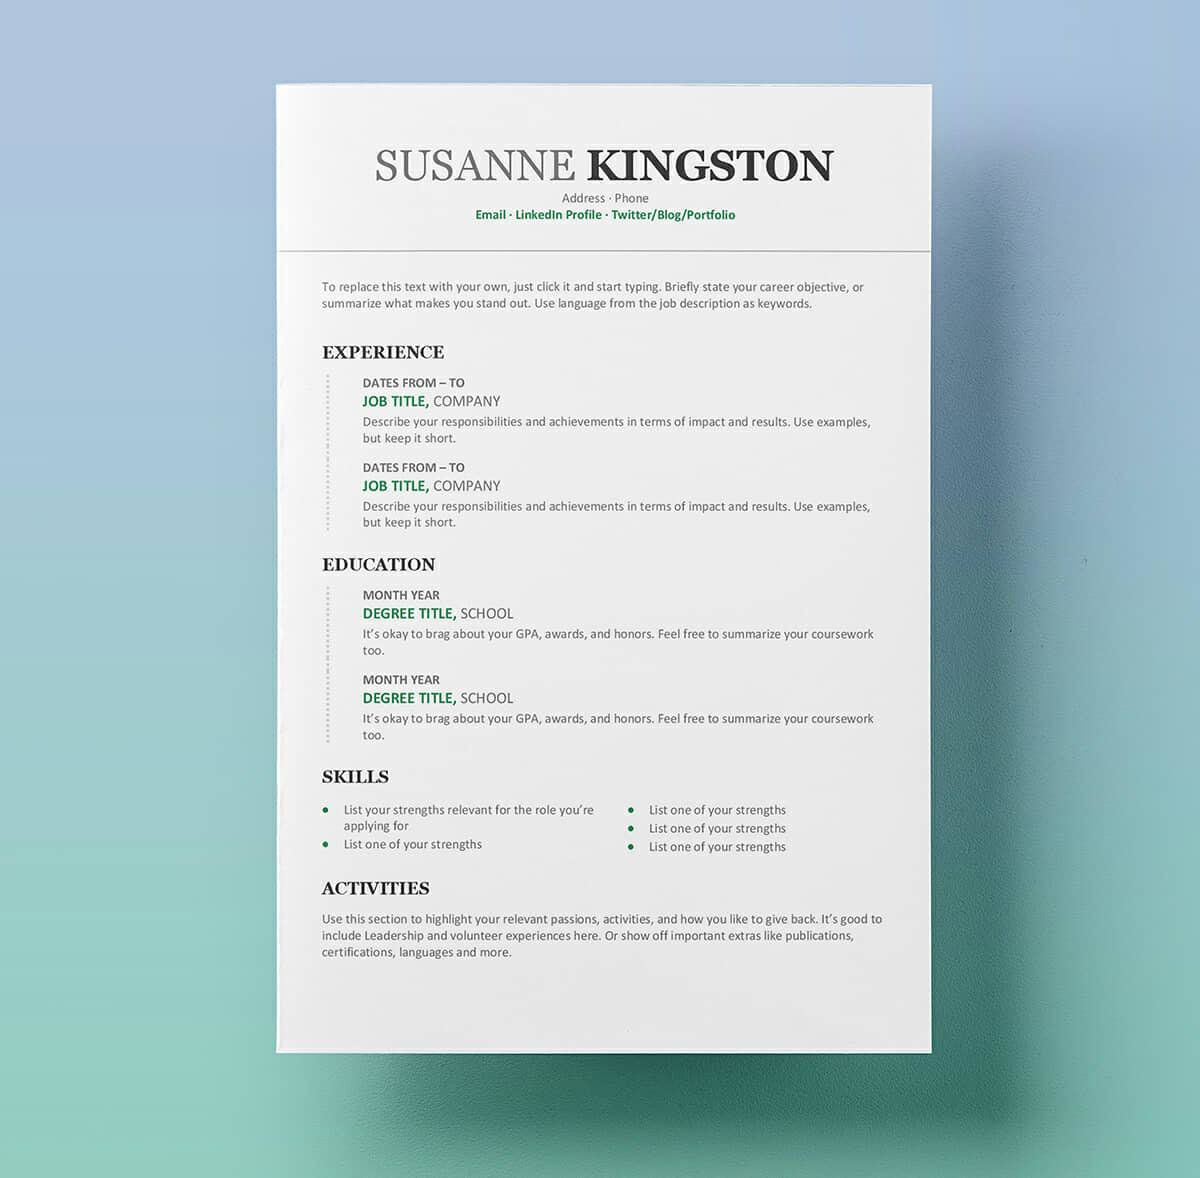 007 Exceptional Resume Template Word Free High Definition  Download India 2020Full